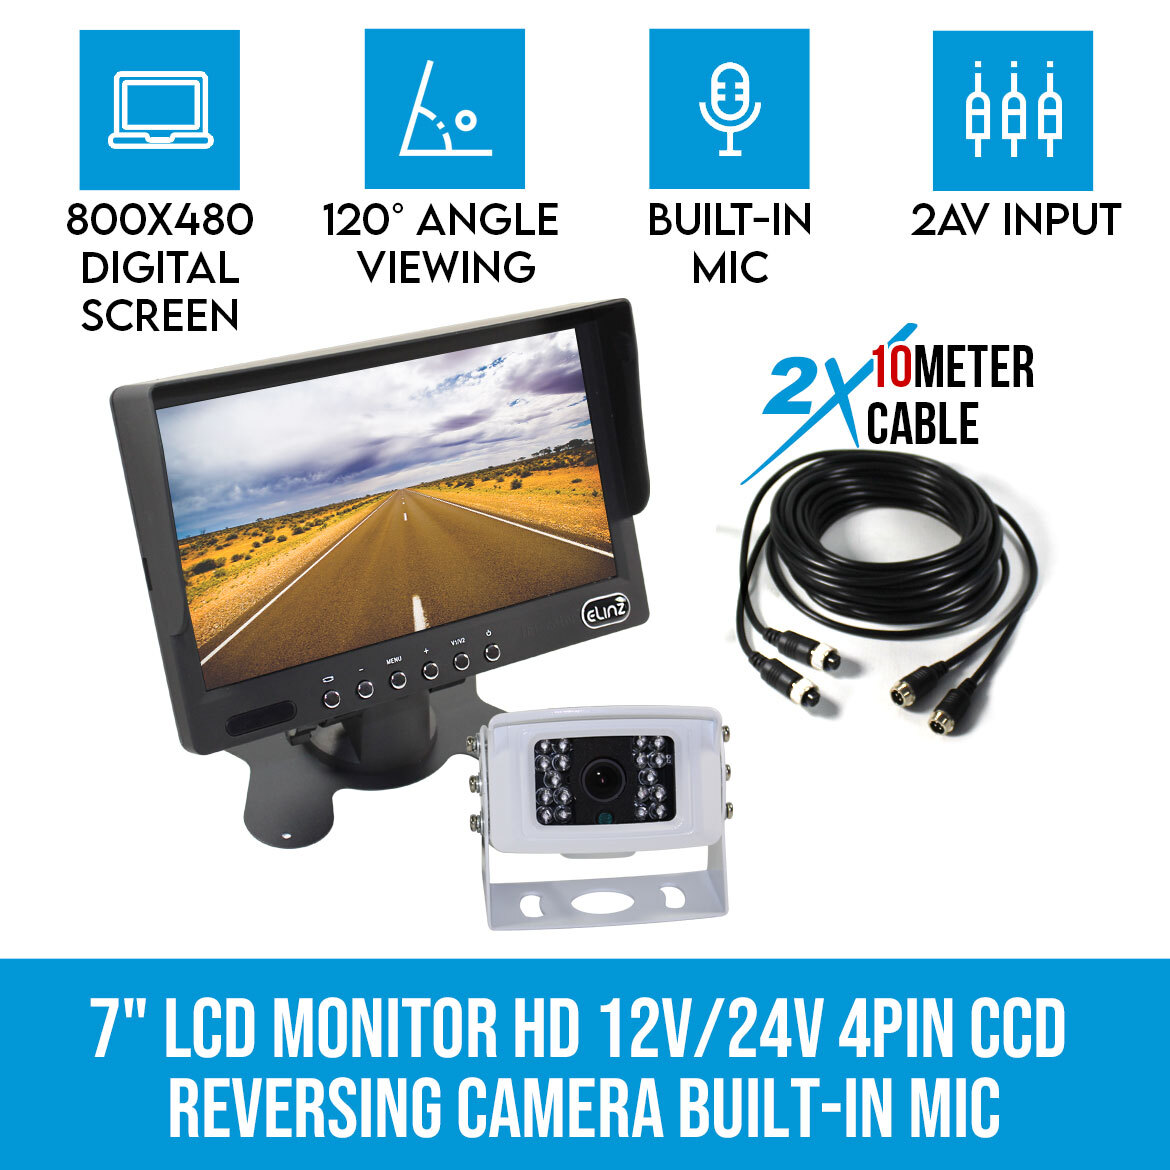 M7SRV10M 7 inch tft lcd monitor 12v 24v colour 4pin ccd reversing camera elinz reversing camera wiring diagram at bakdesigns.co